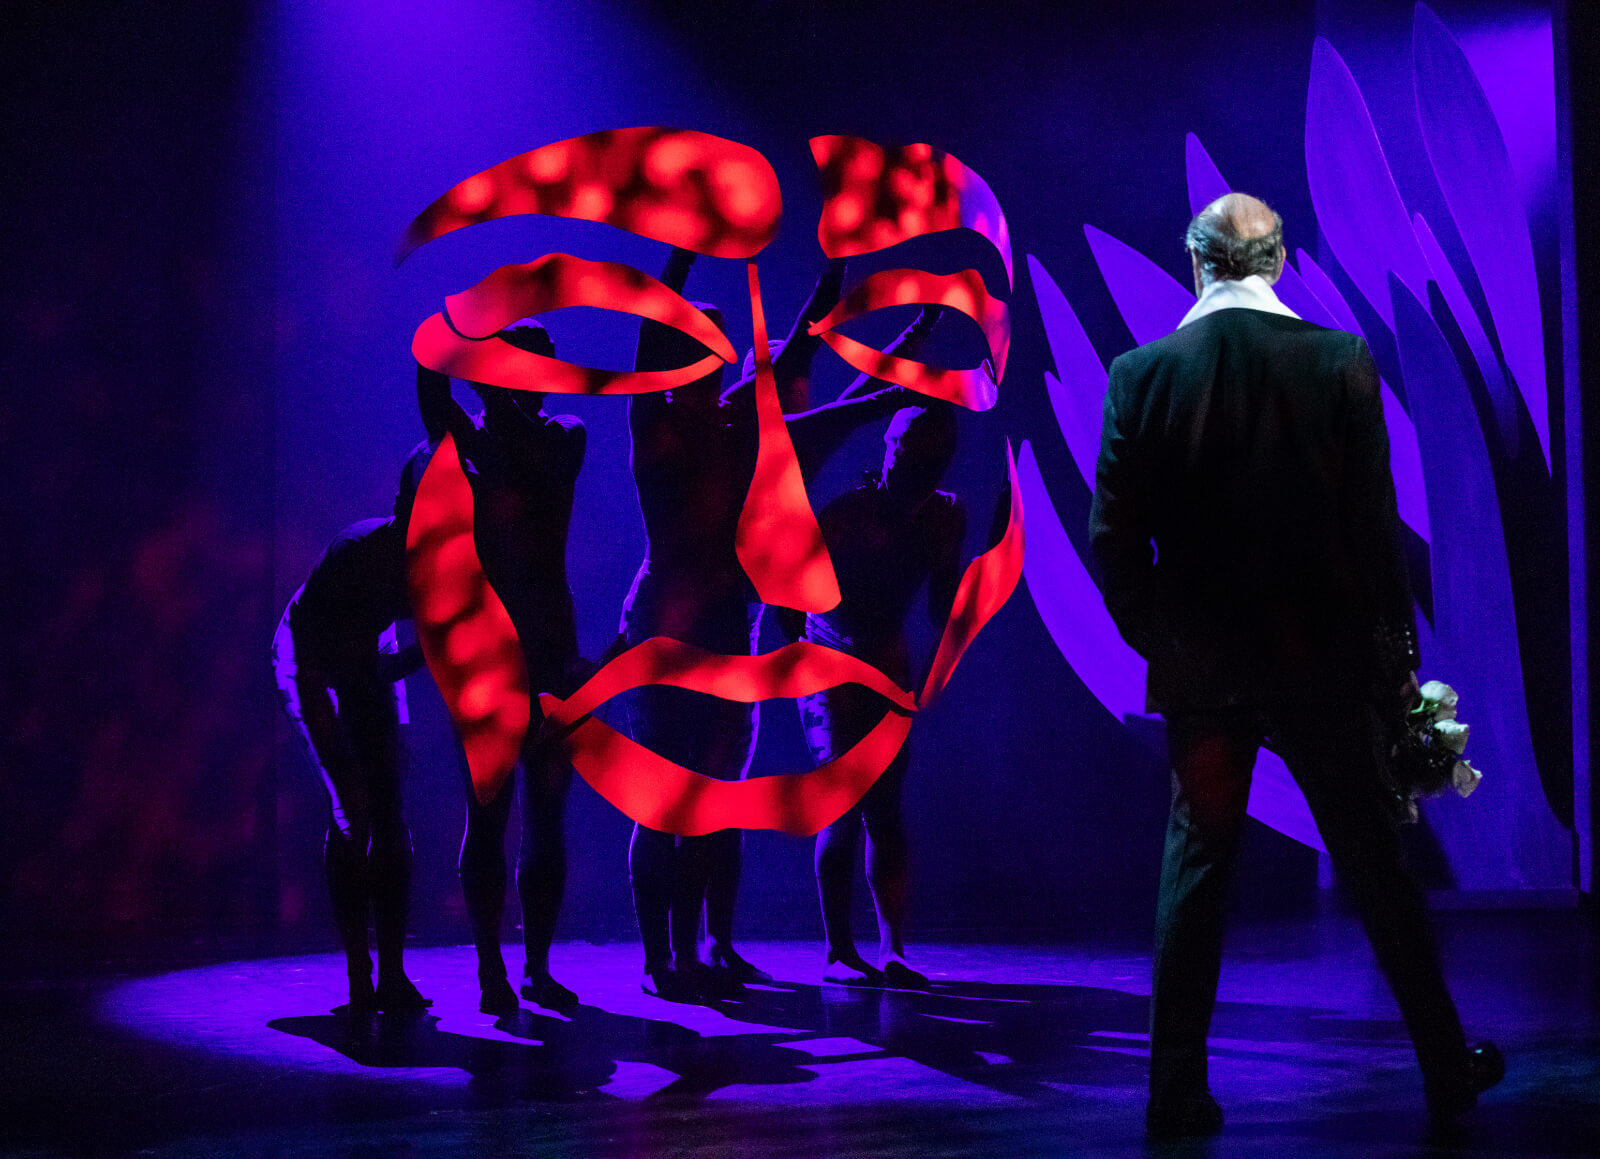 John Marcher (Peter Friedman)confronts the Beast in the Prologue. The Beast face is created by red puppetry pieces.